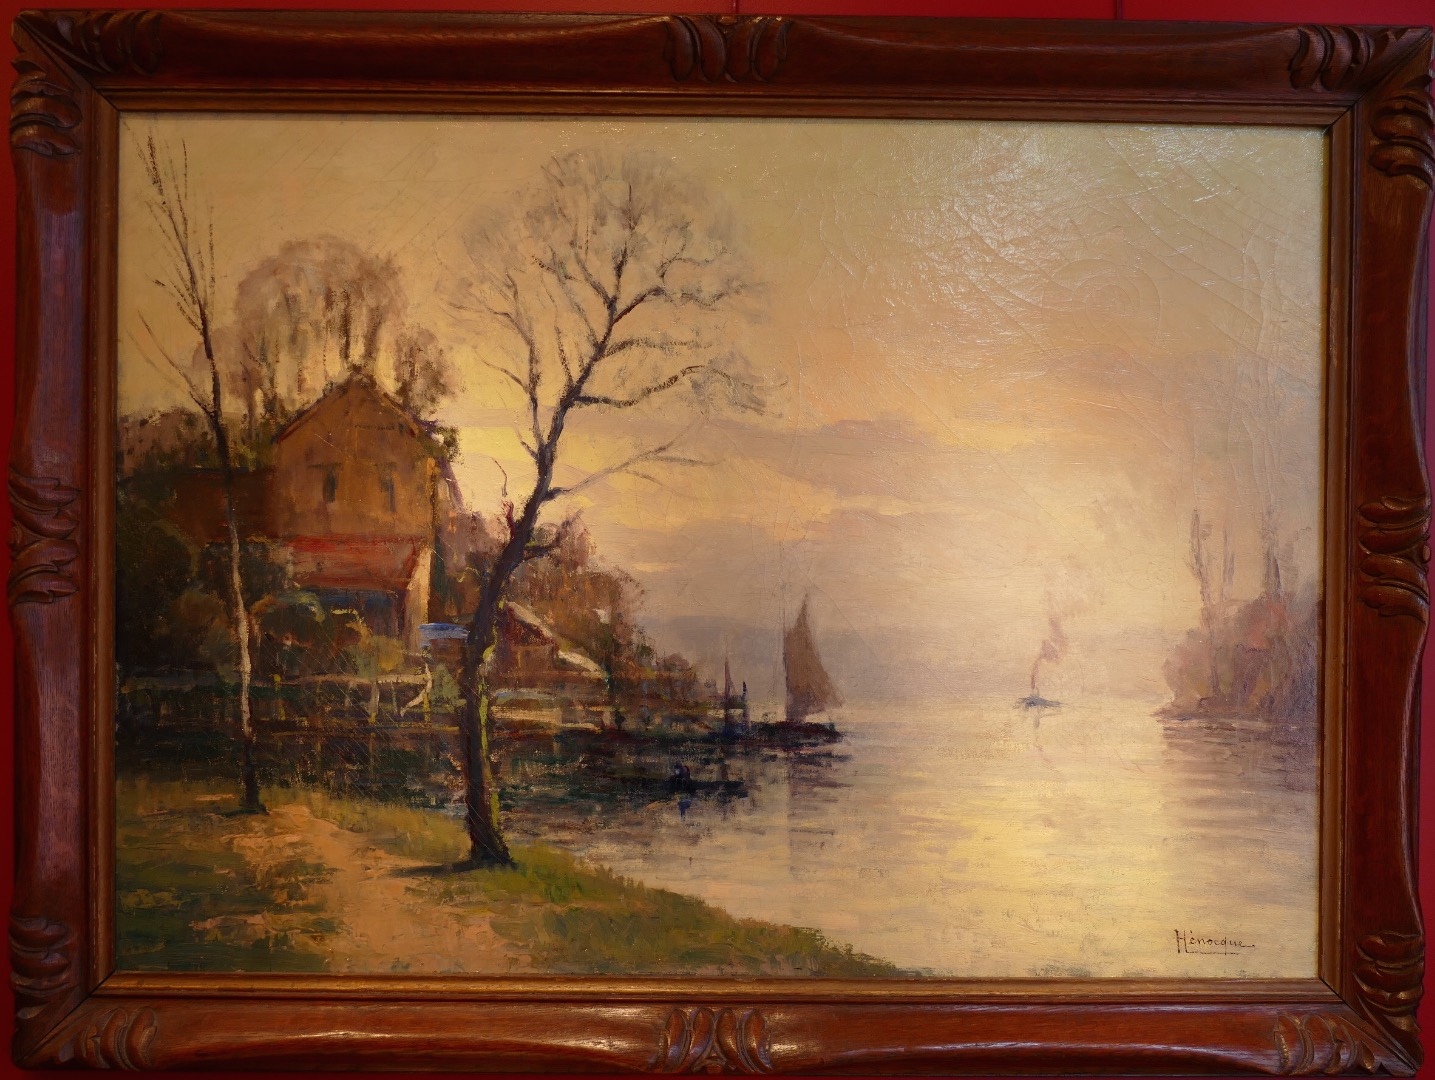 Henocque Narcisse Painting 20th Rouen School Oil On Canvas Signed The Banks Of The Seine